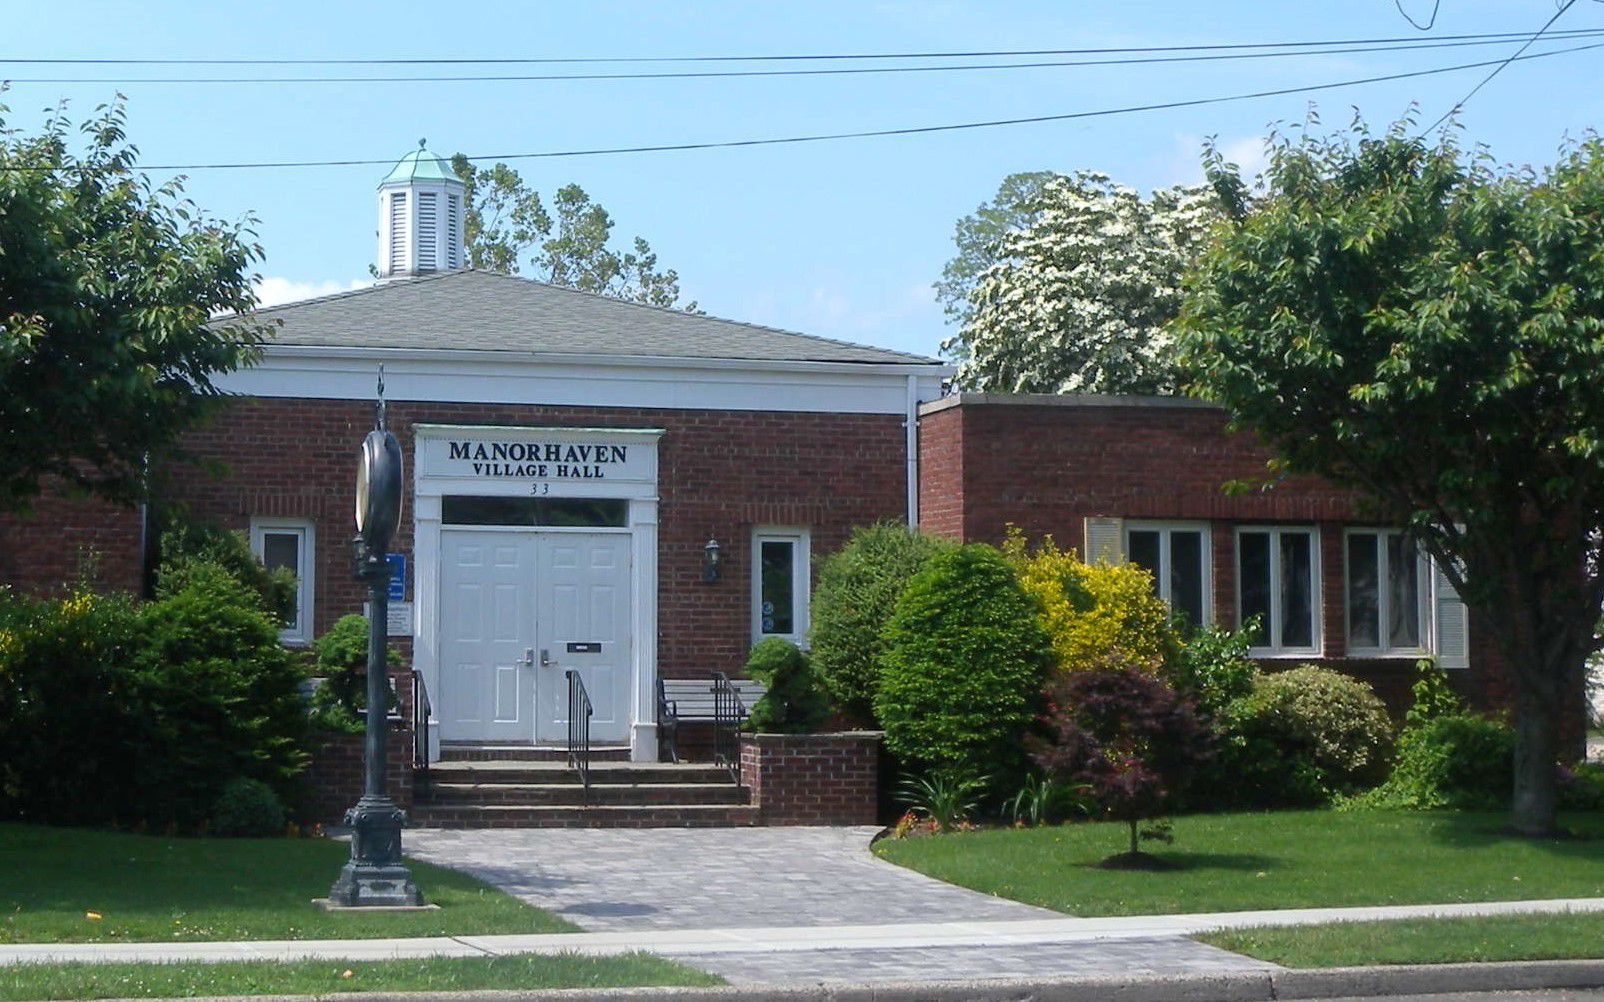 DuBois removed from Manorhaven zoning board